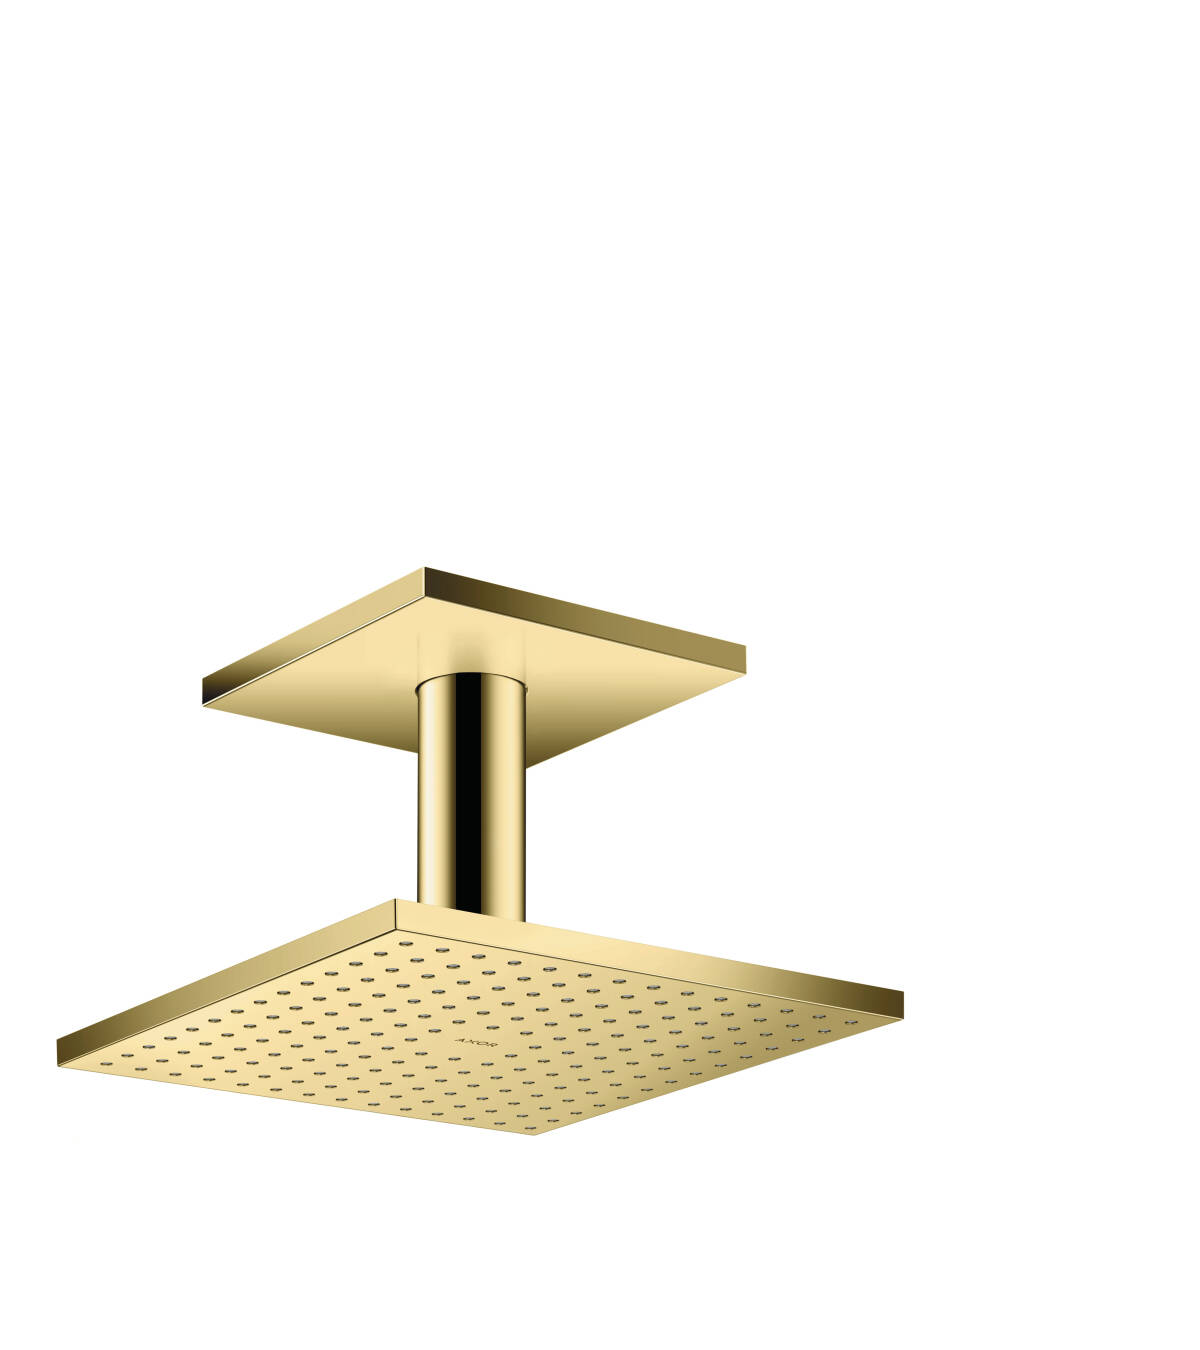 Overhead shower 250/250 1jet with ceiling connection, Polished Brass, 35308930